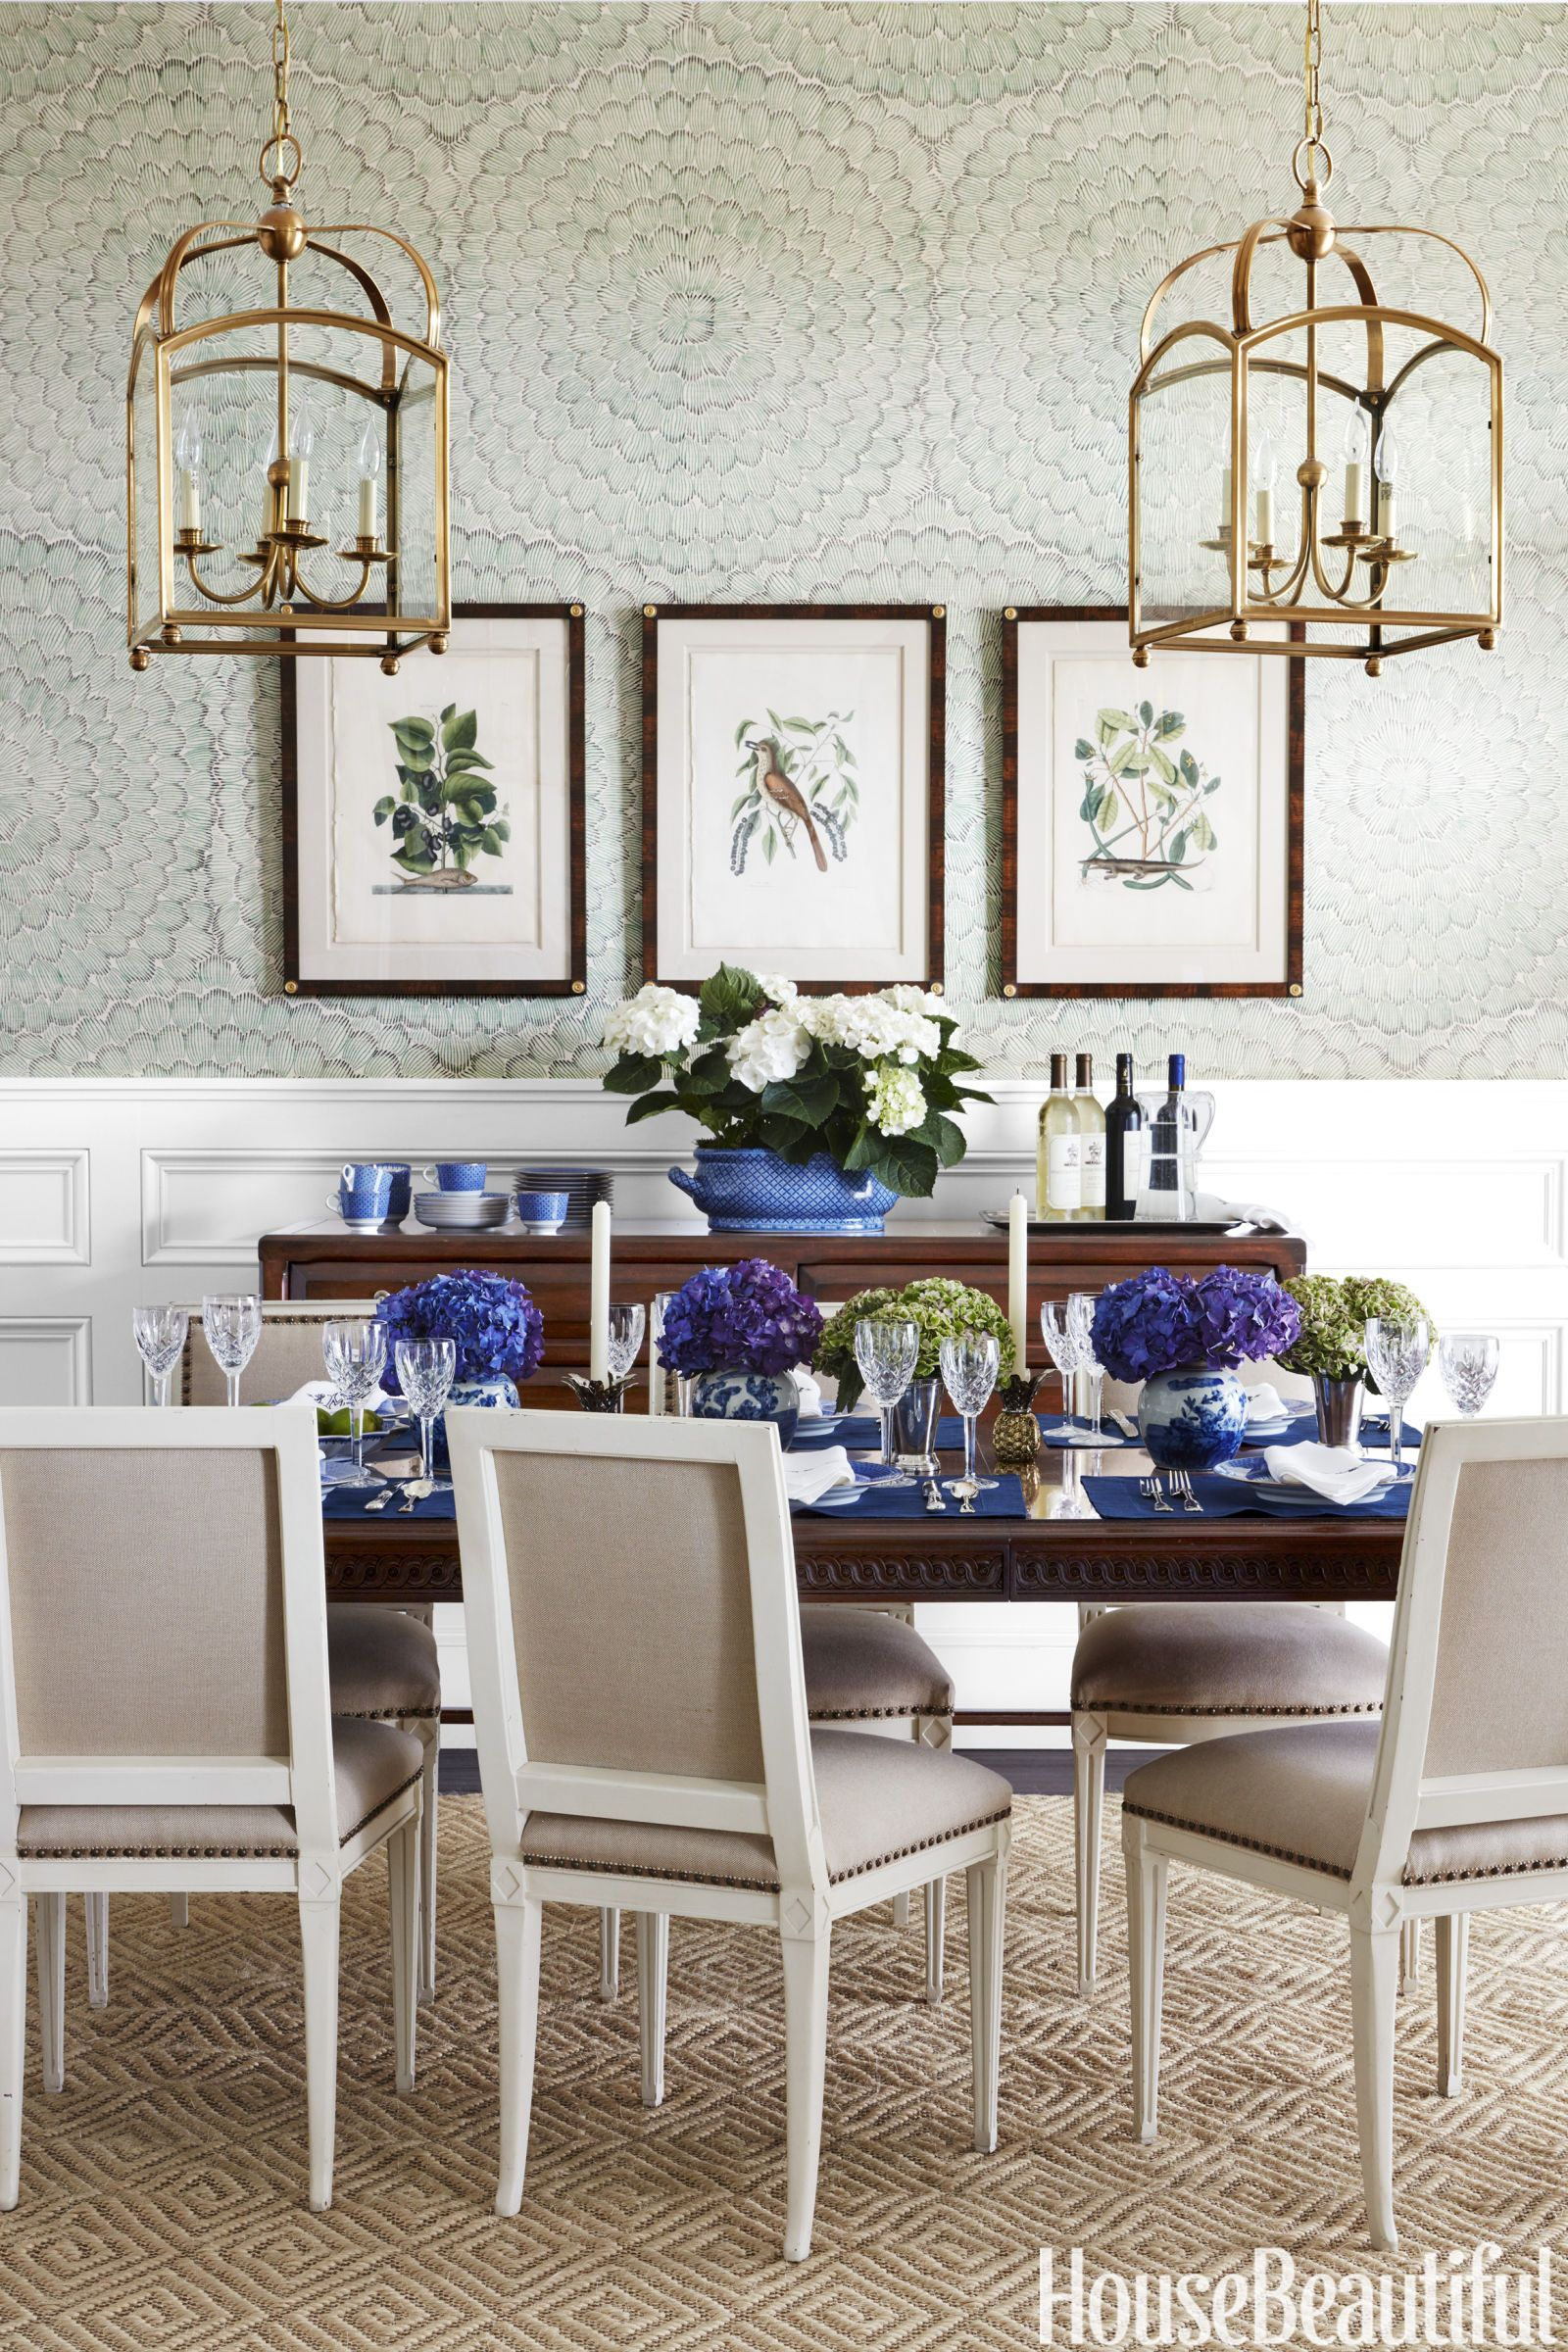 This Blue and White House Will Cure Your Monday Blues